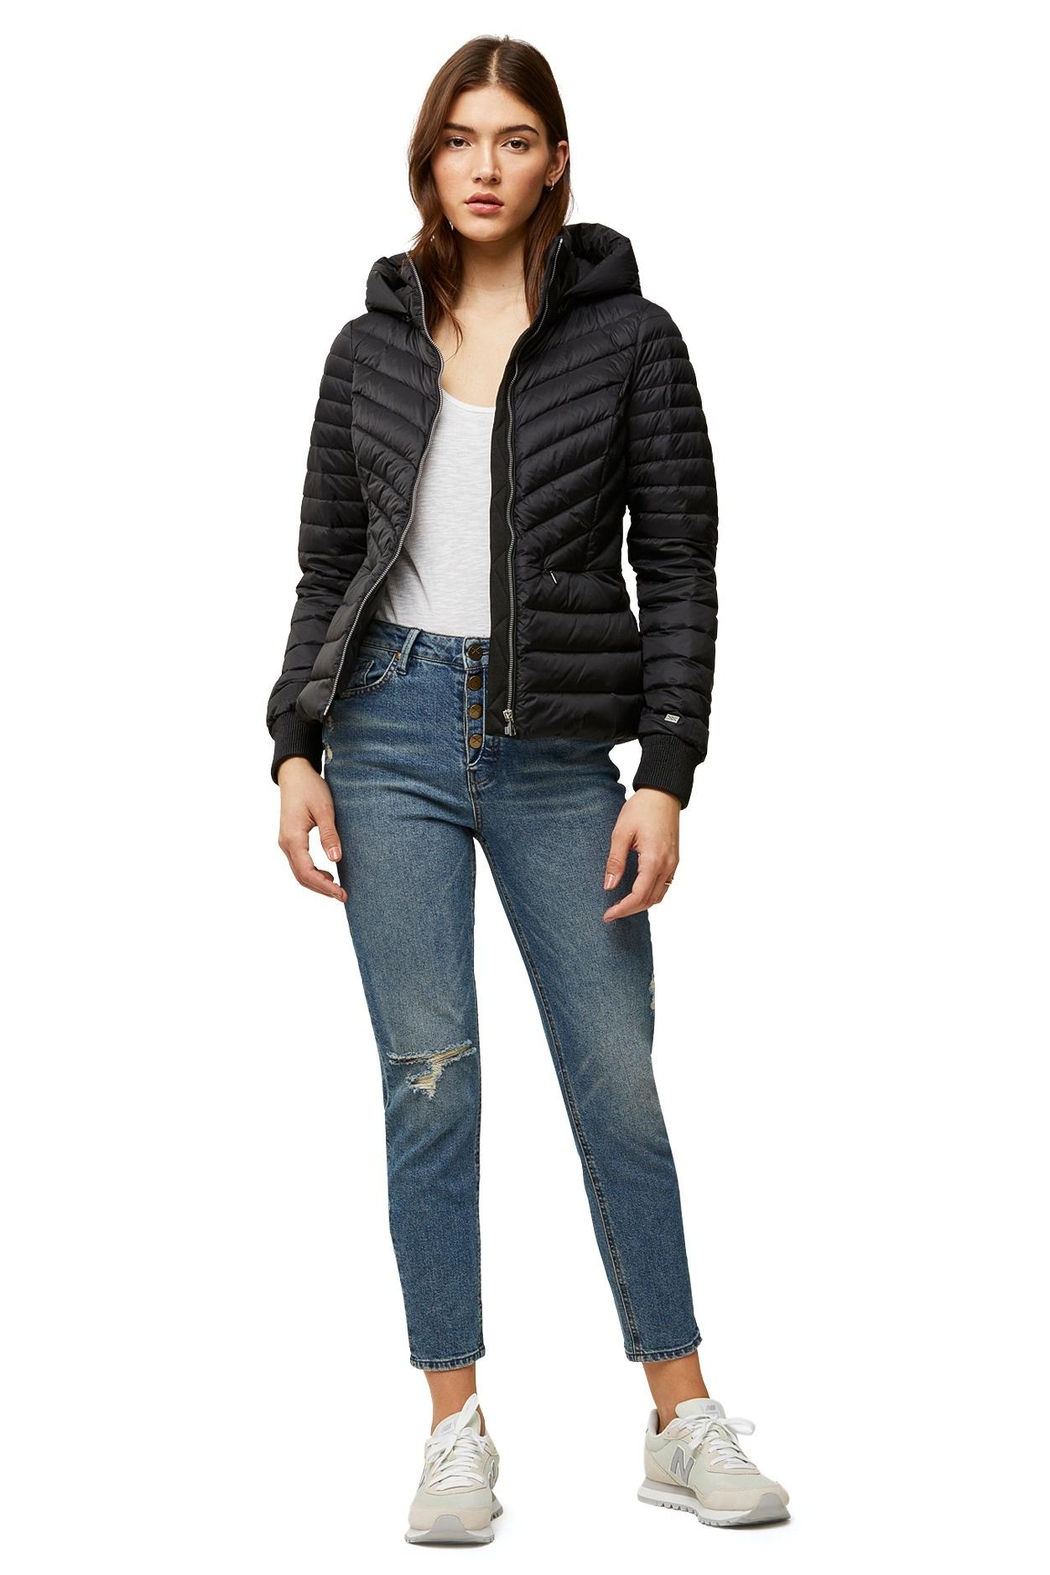 Soia & Kyo Chalee Ladies Hooded Light Down Jacket - Main Image